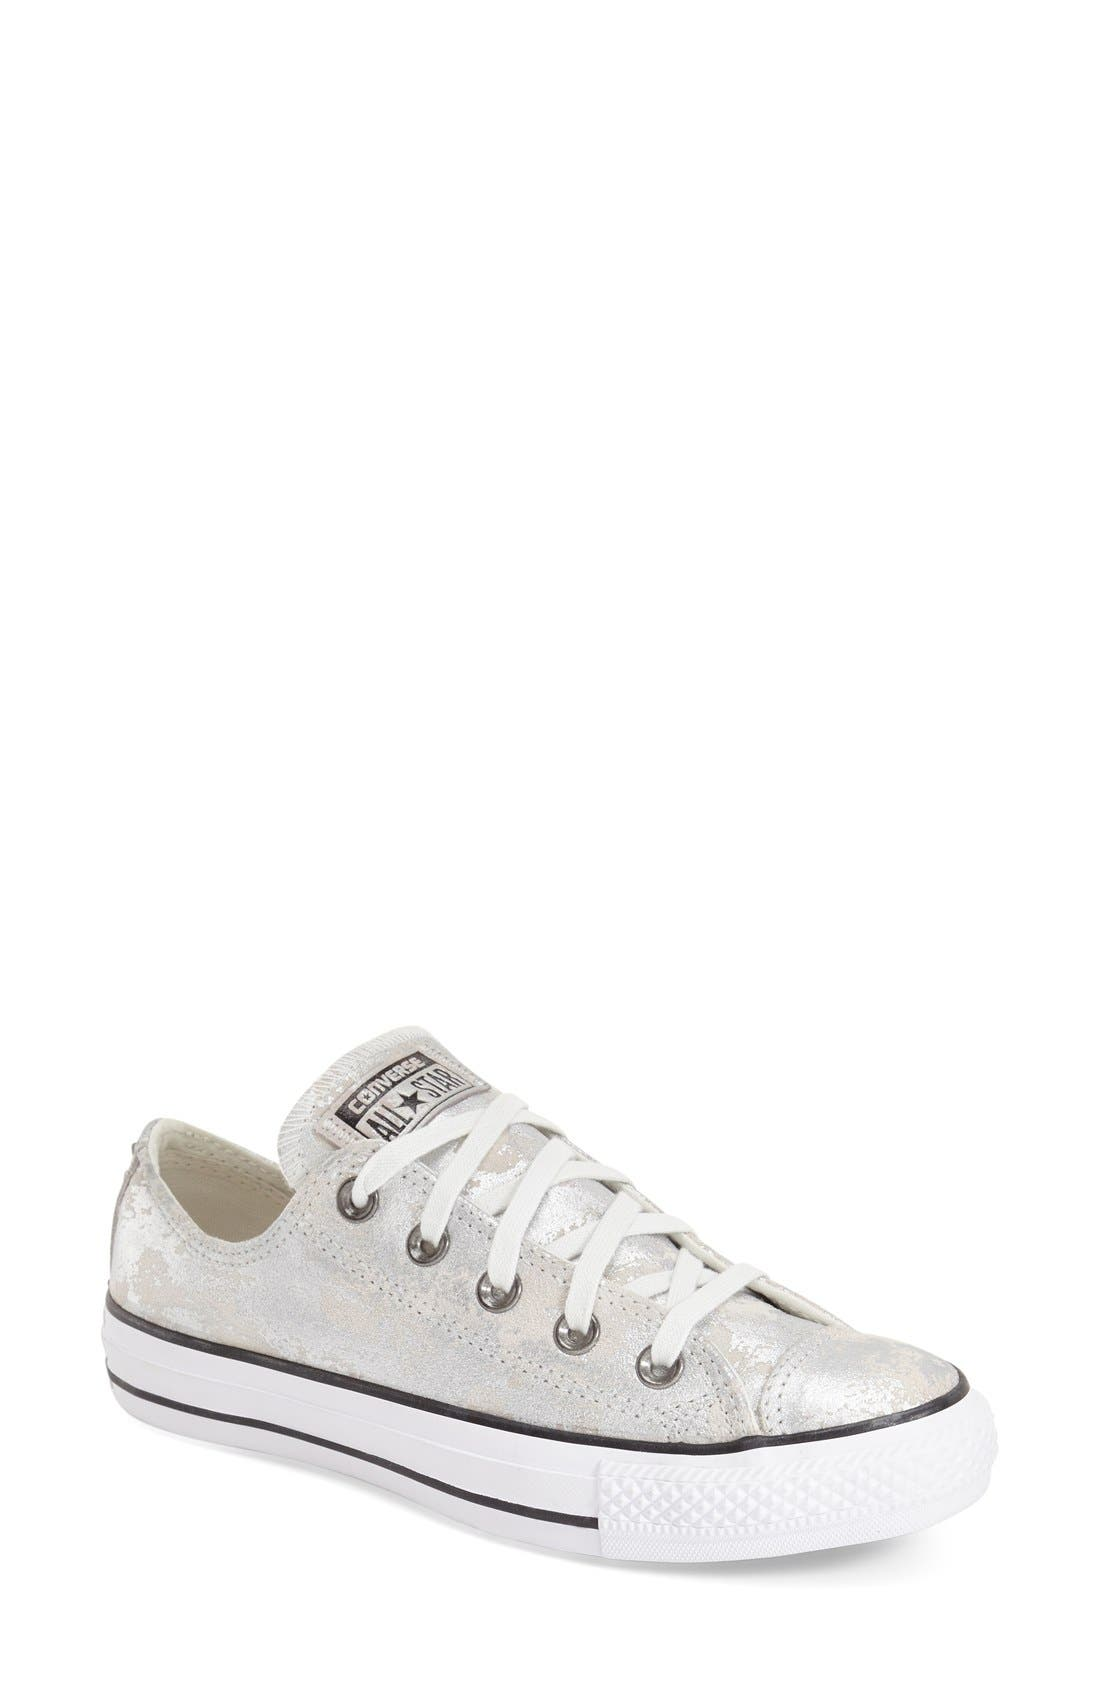 Main Image - Converse Chuck Taylor® All Star® 'Pyramid' Leather Sneaker (Women)